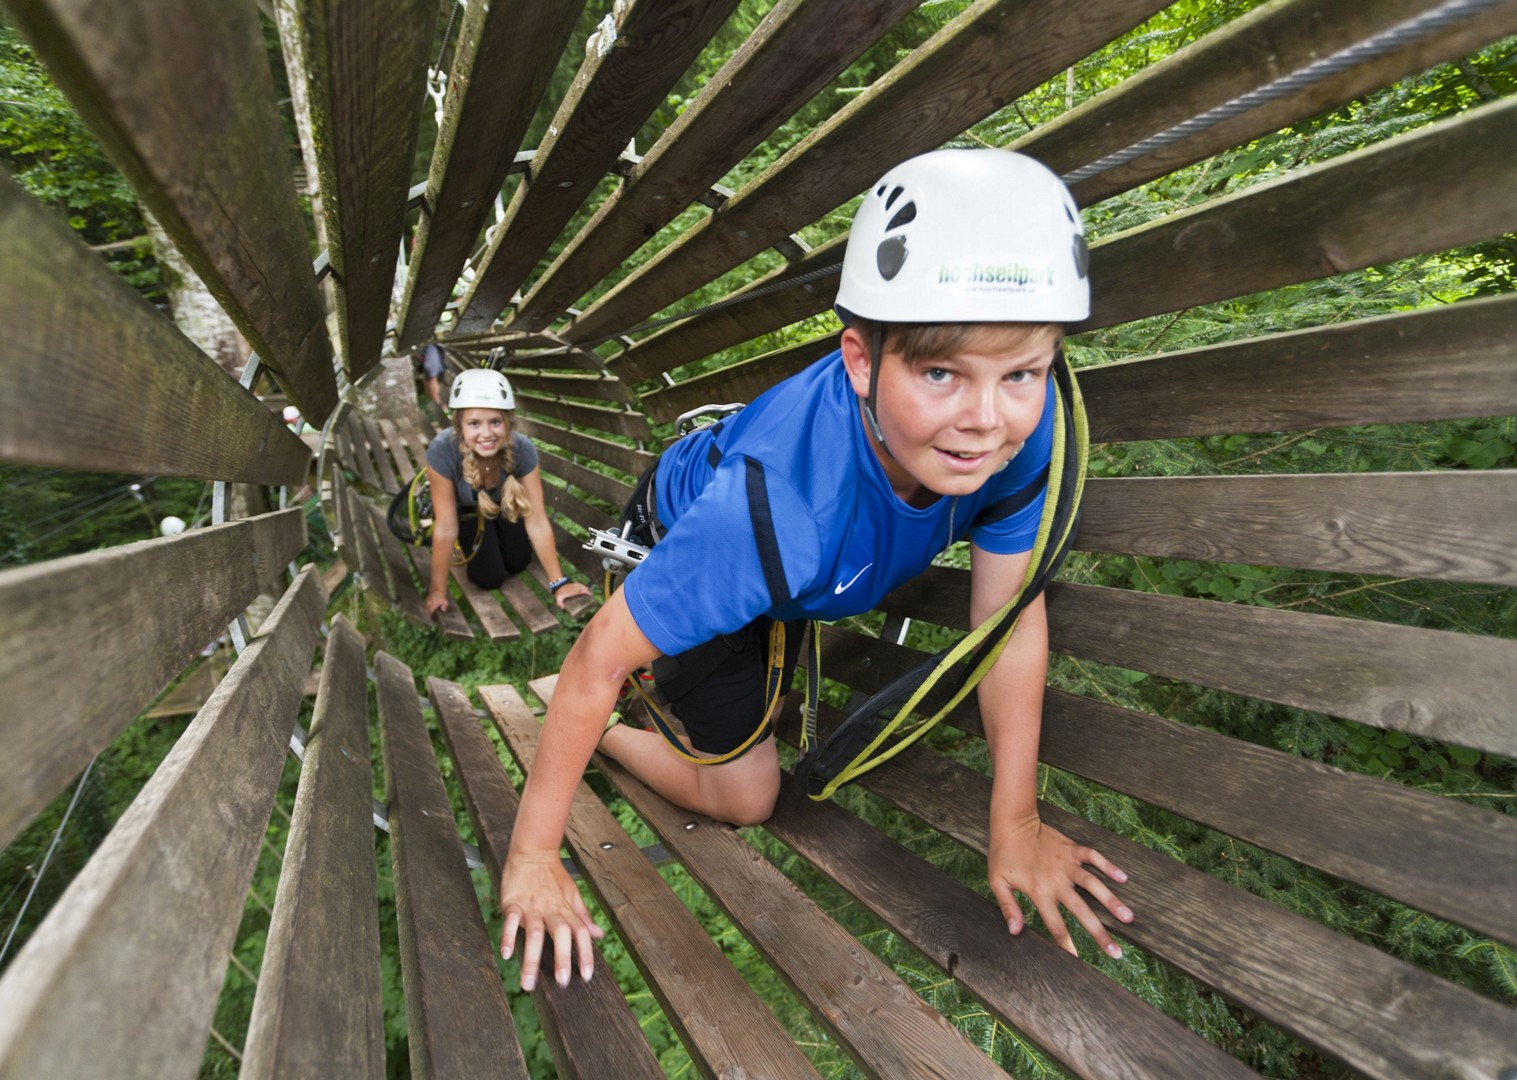 seeham-high-ropes-park-austria-family-cycling-holiday.jpg - Austria - Ten Lakes Tour - Self-Guided Family Cycling Holiday - Family Cycling